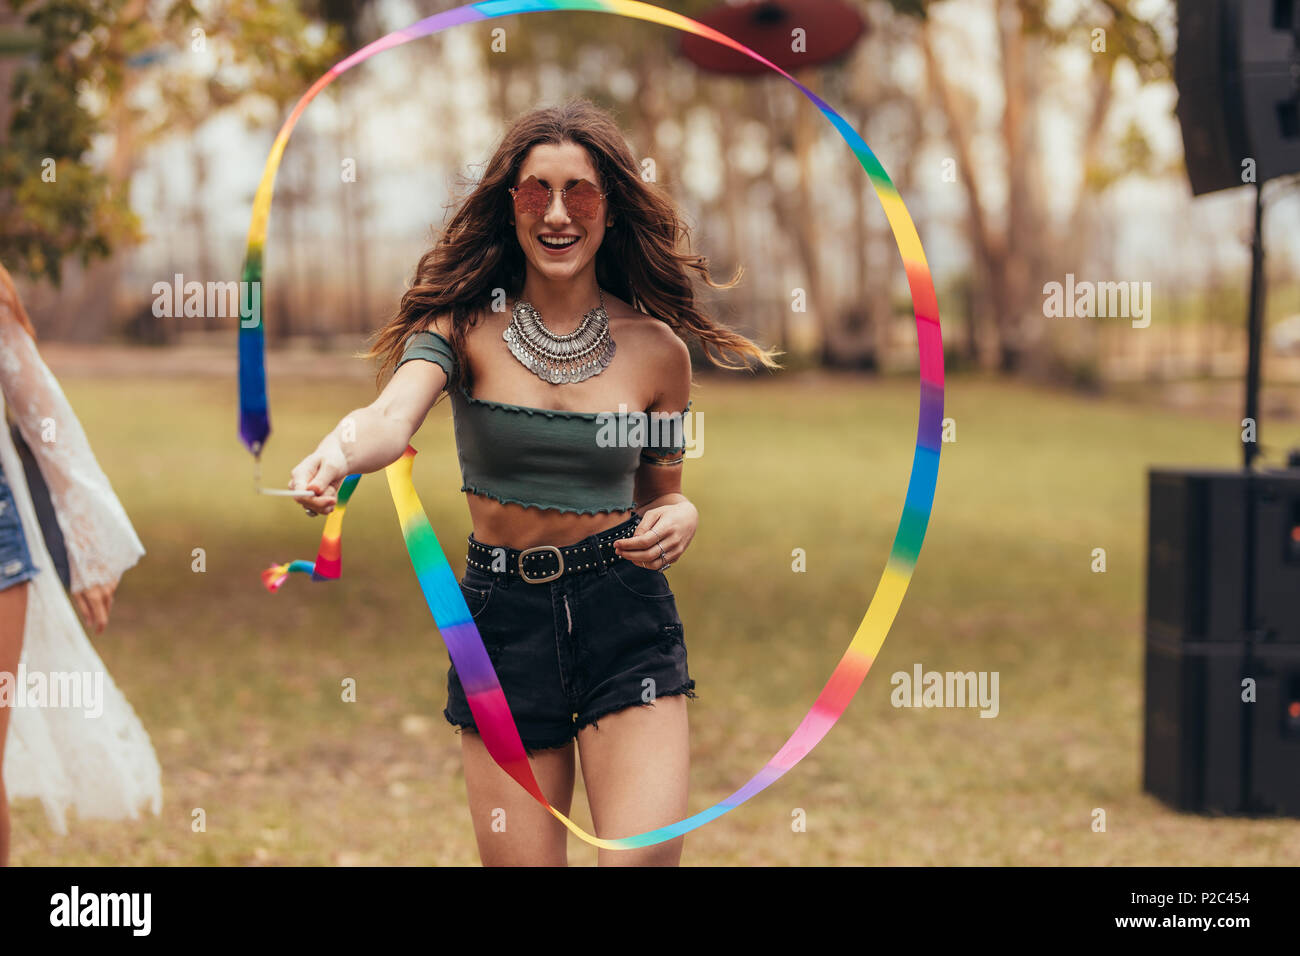 Beautiful young woman playing with ribbon stick at music festival. Female hipster enjoying at music festival. - Stock Image